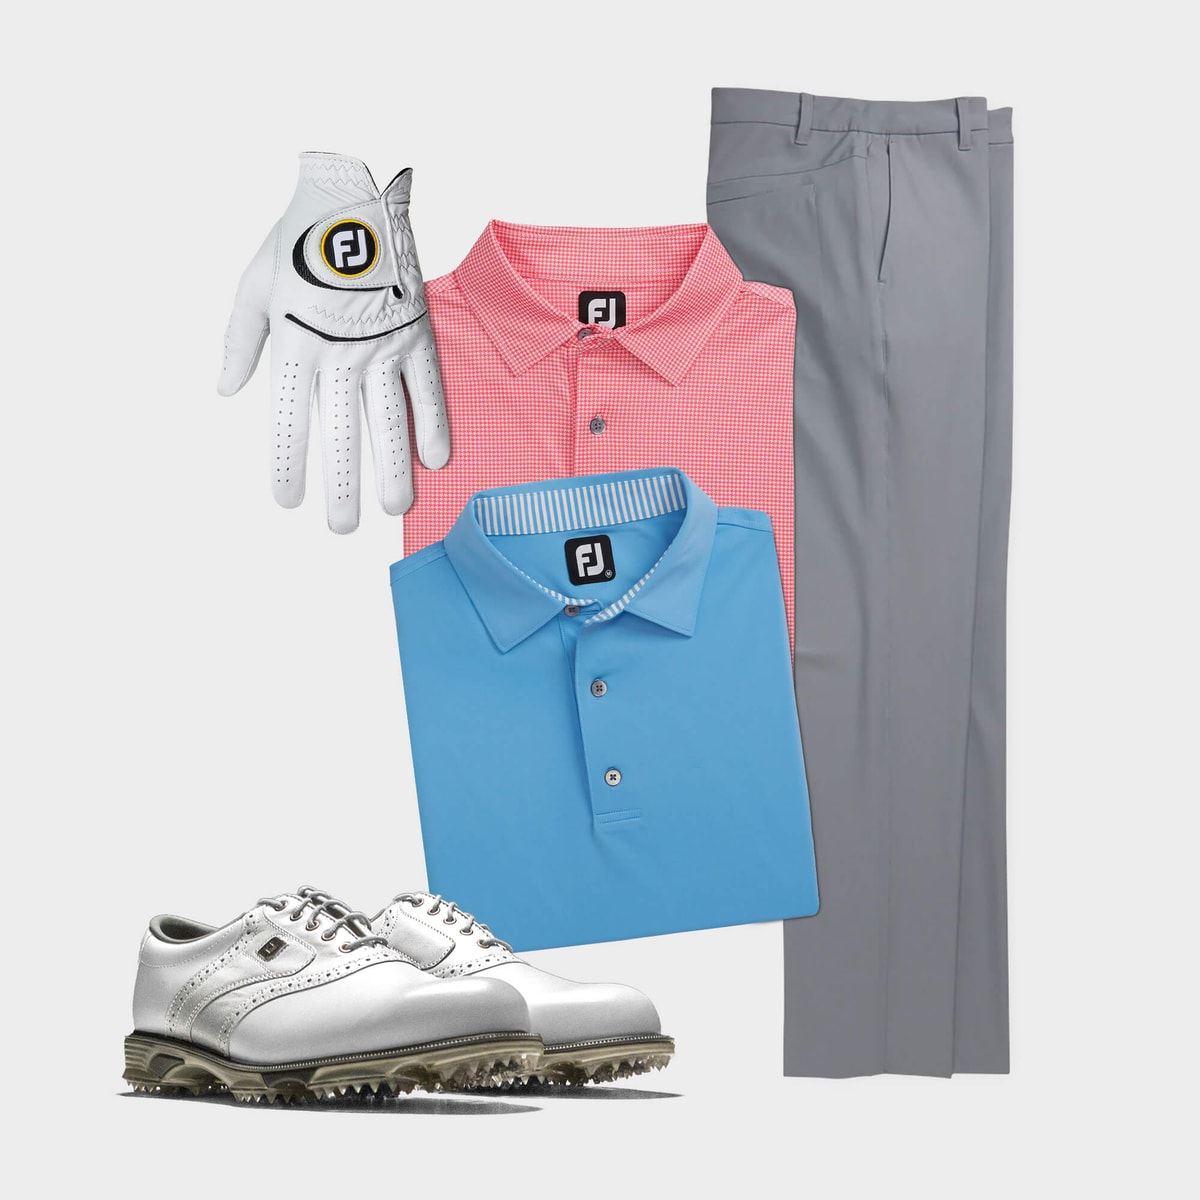 Competitive Golfer